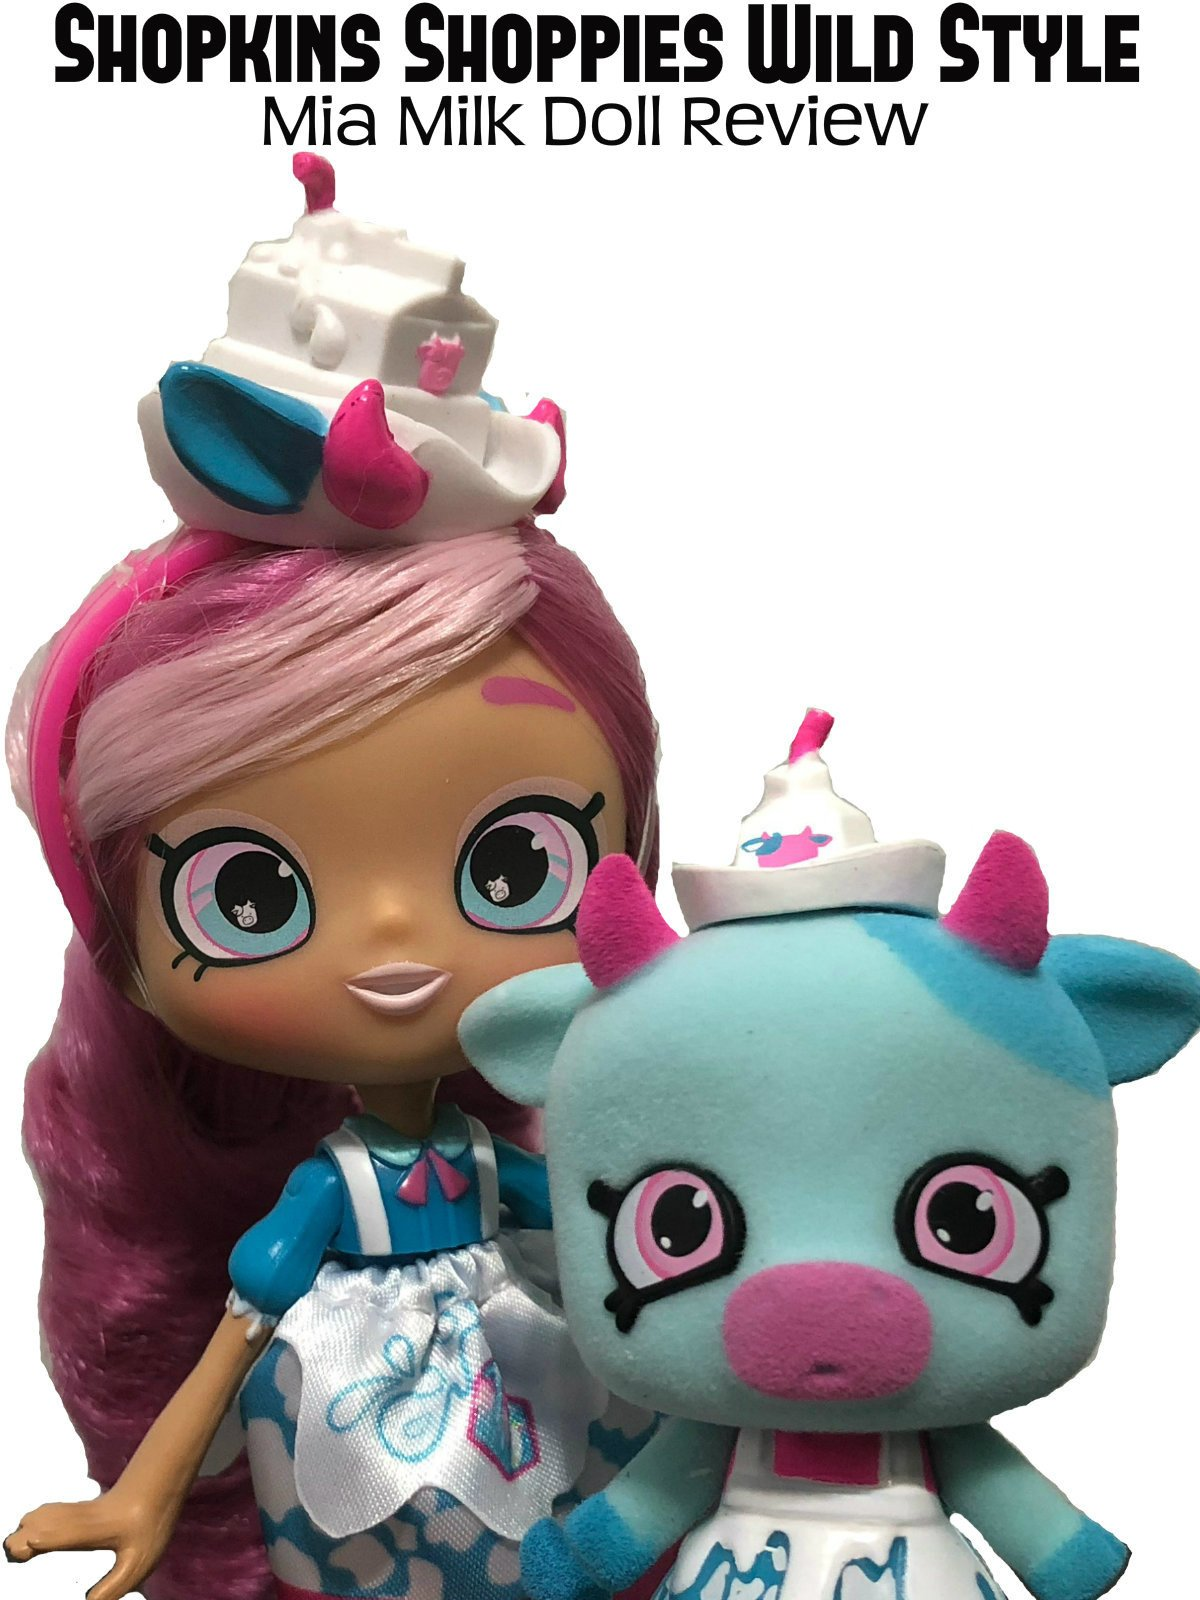 Review: Shopkins Shoppies Wild Style Mia Milk Doll Review on Amazon Prime Instant Video UK